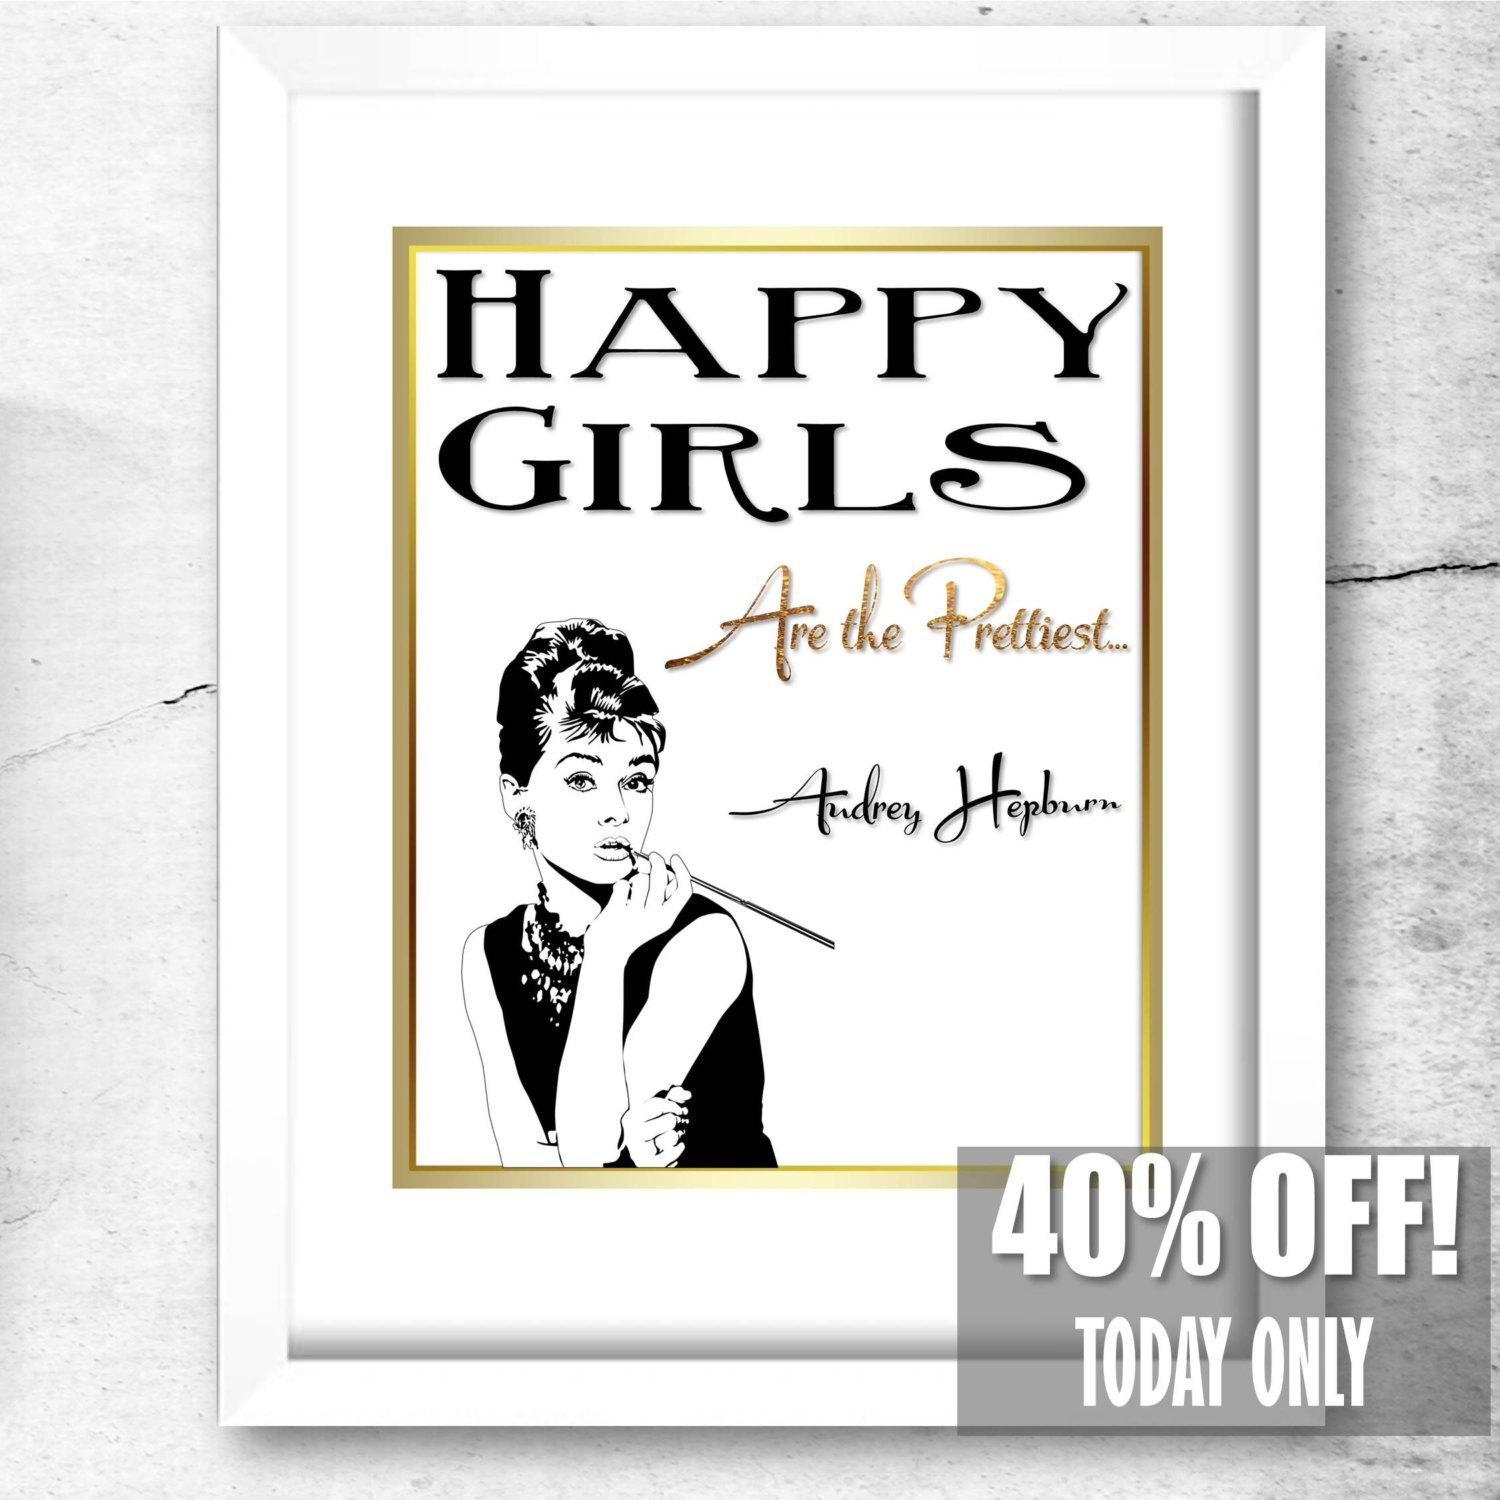 Audrey Hepburn Quote Glamour Prints Audrey Hepburn Gifts Inside Glamorous Audrey Hepburn Wall Art (View 11 of 20)